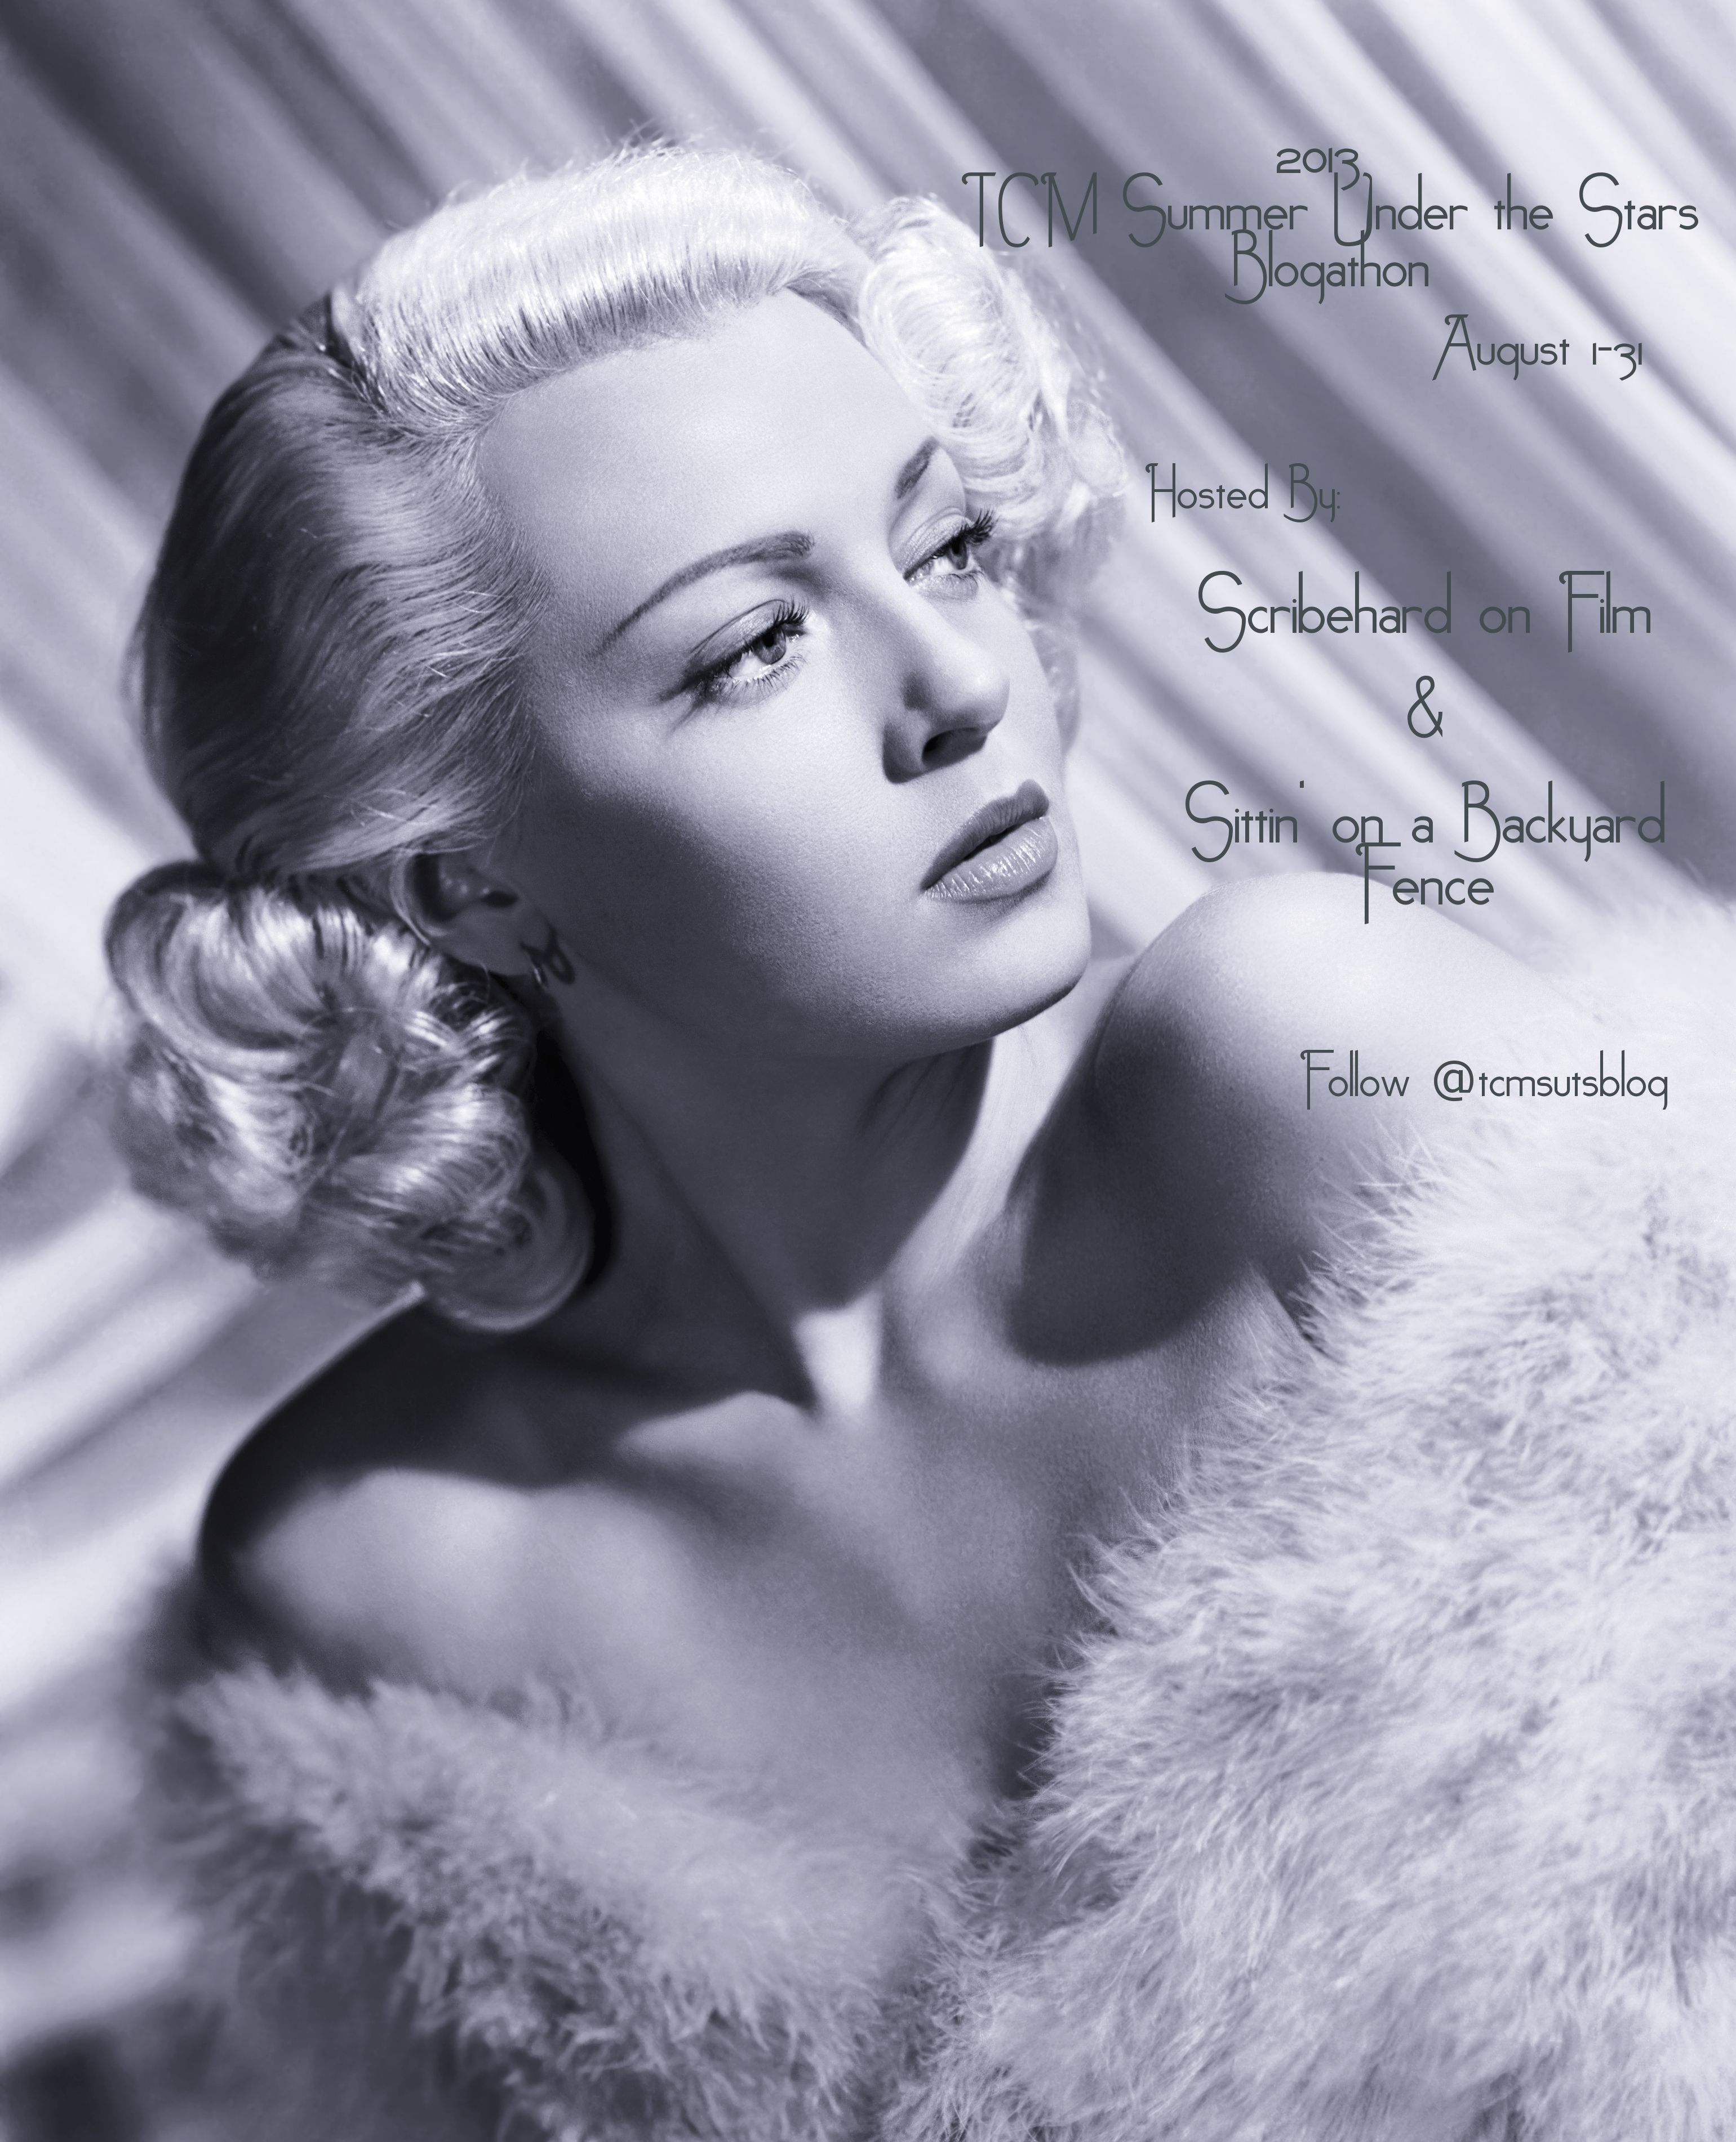 Lana Turner was one of the biggest movie stars in the 1940's and 1950's and also one of the most beautiful and glamorous. Description from mark-markmywords.blogspot.com. I searched for this on bing.com/images